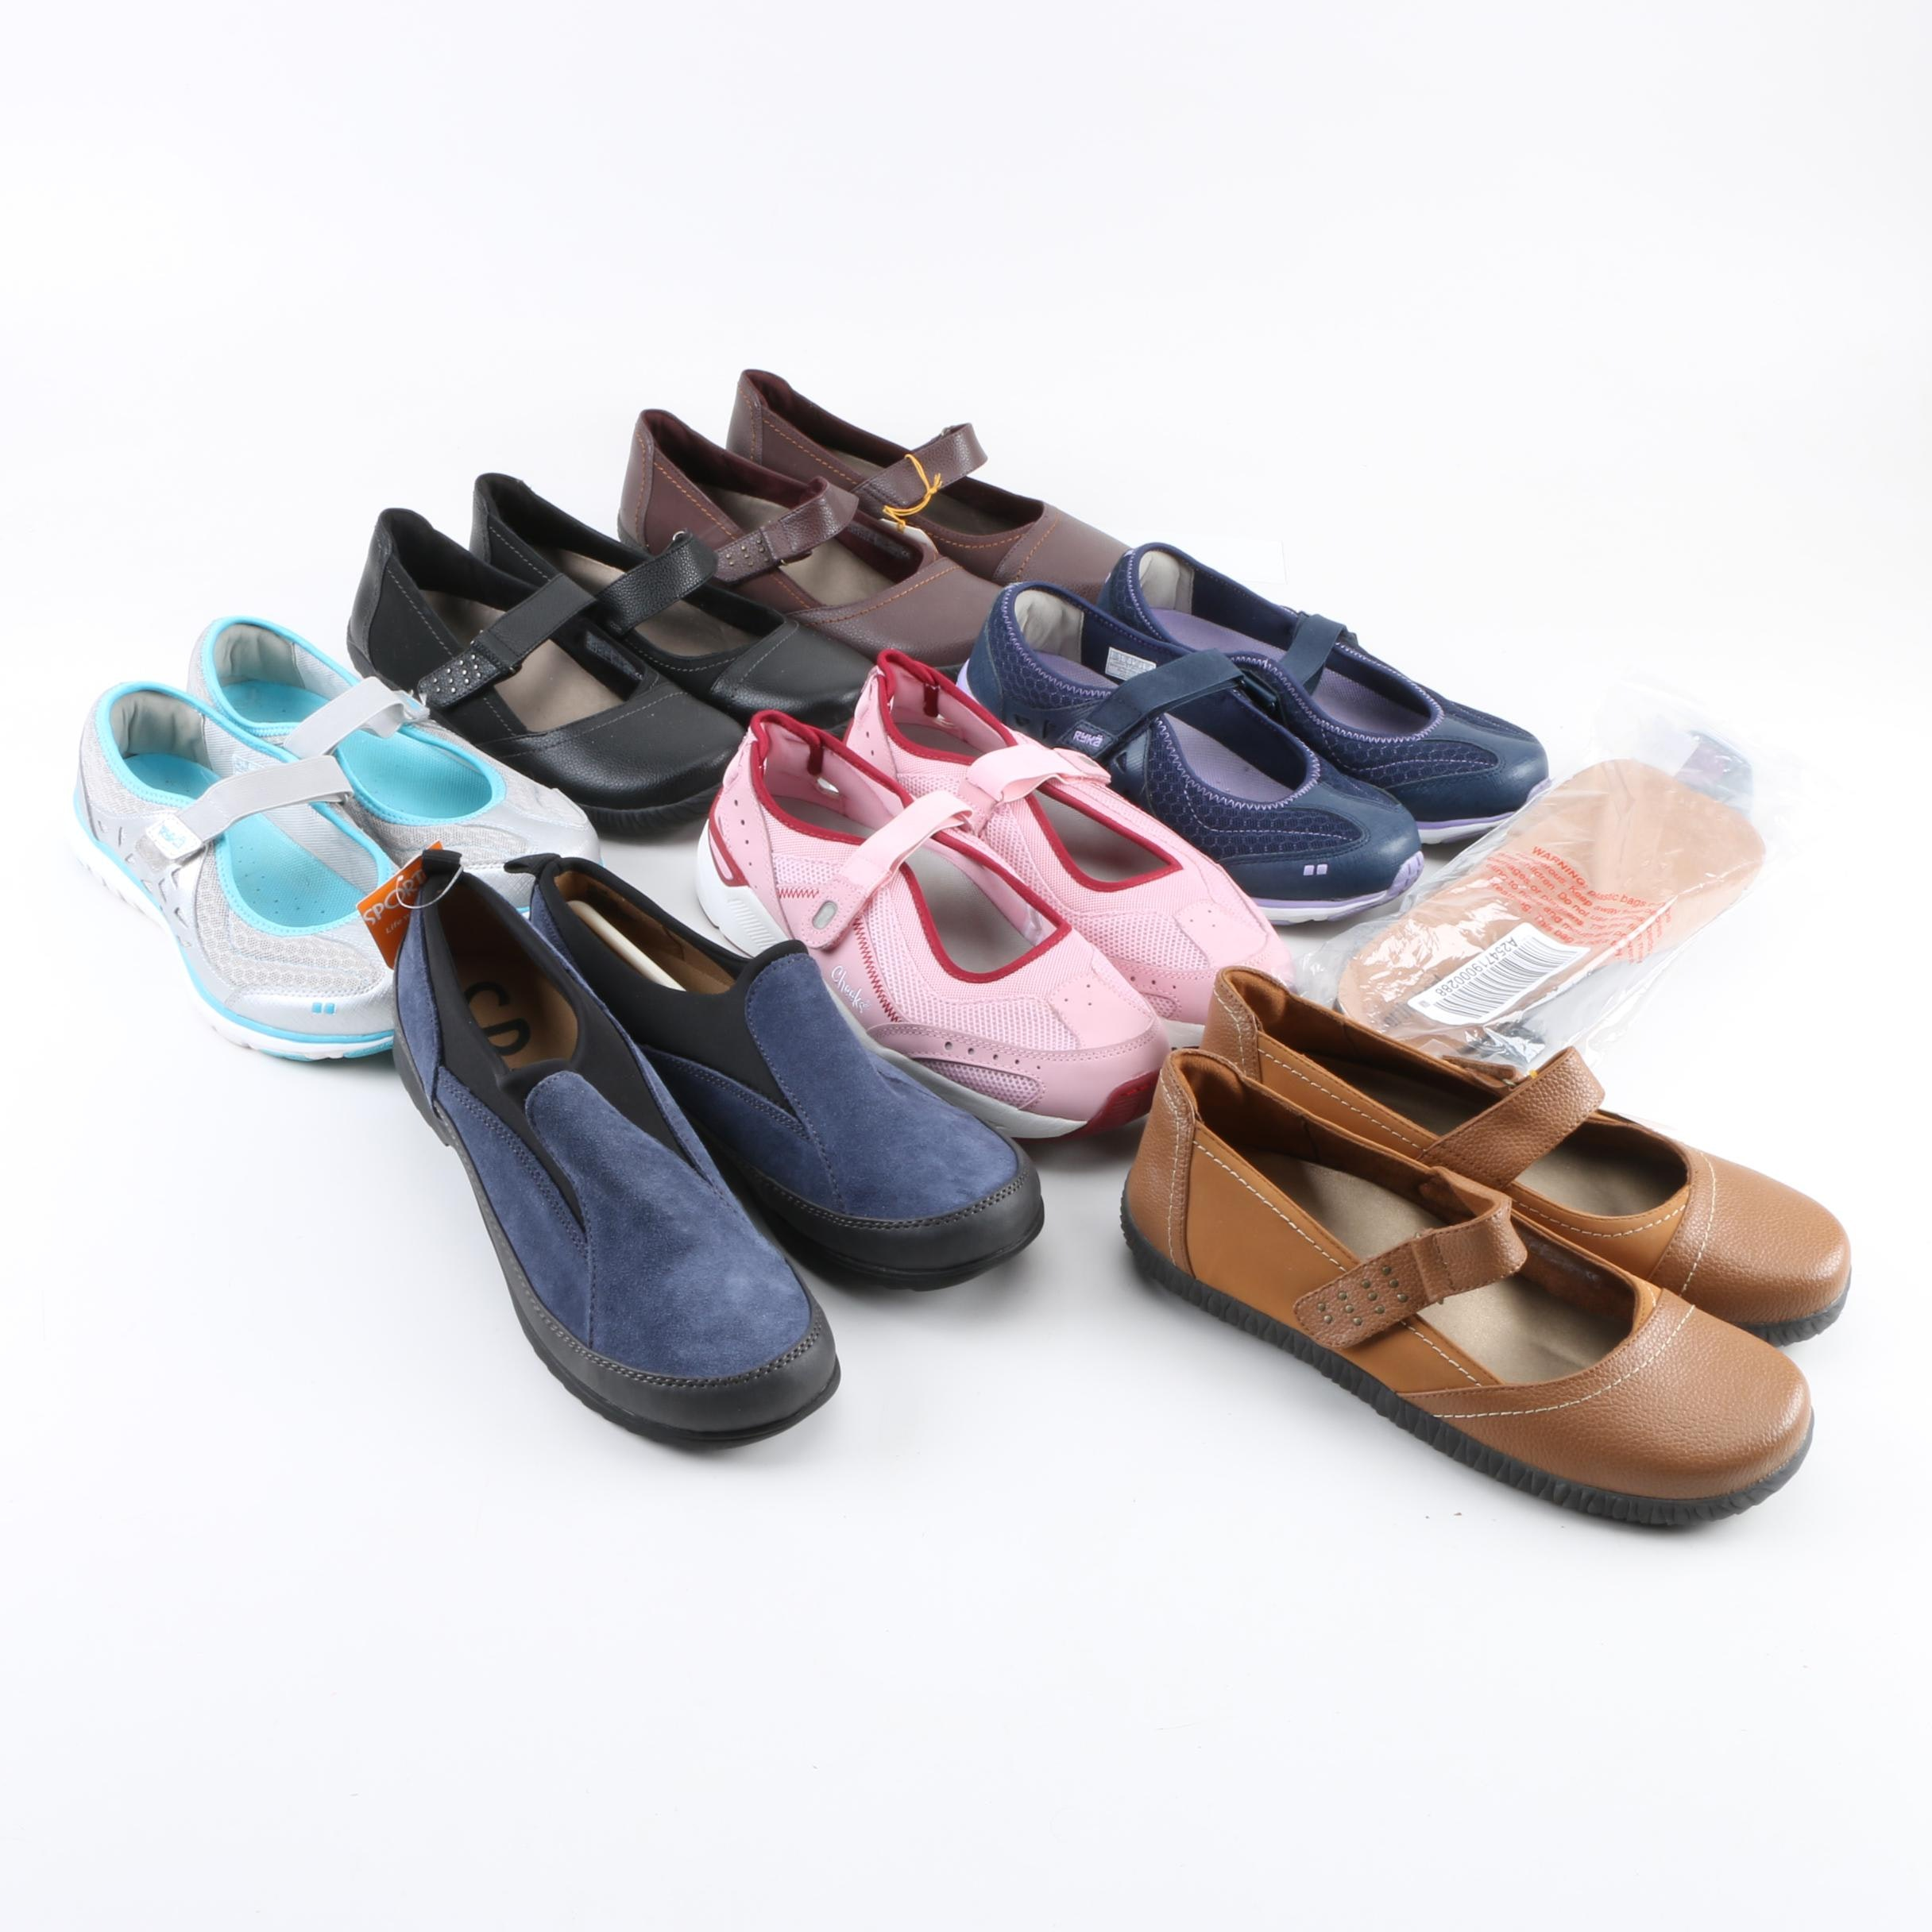 Women's Orthopedic Flats, Sneakers and Insoles